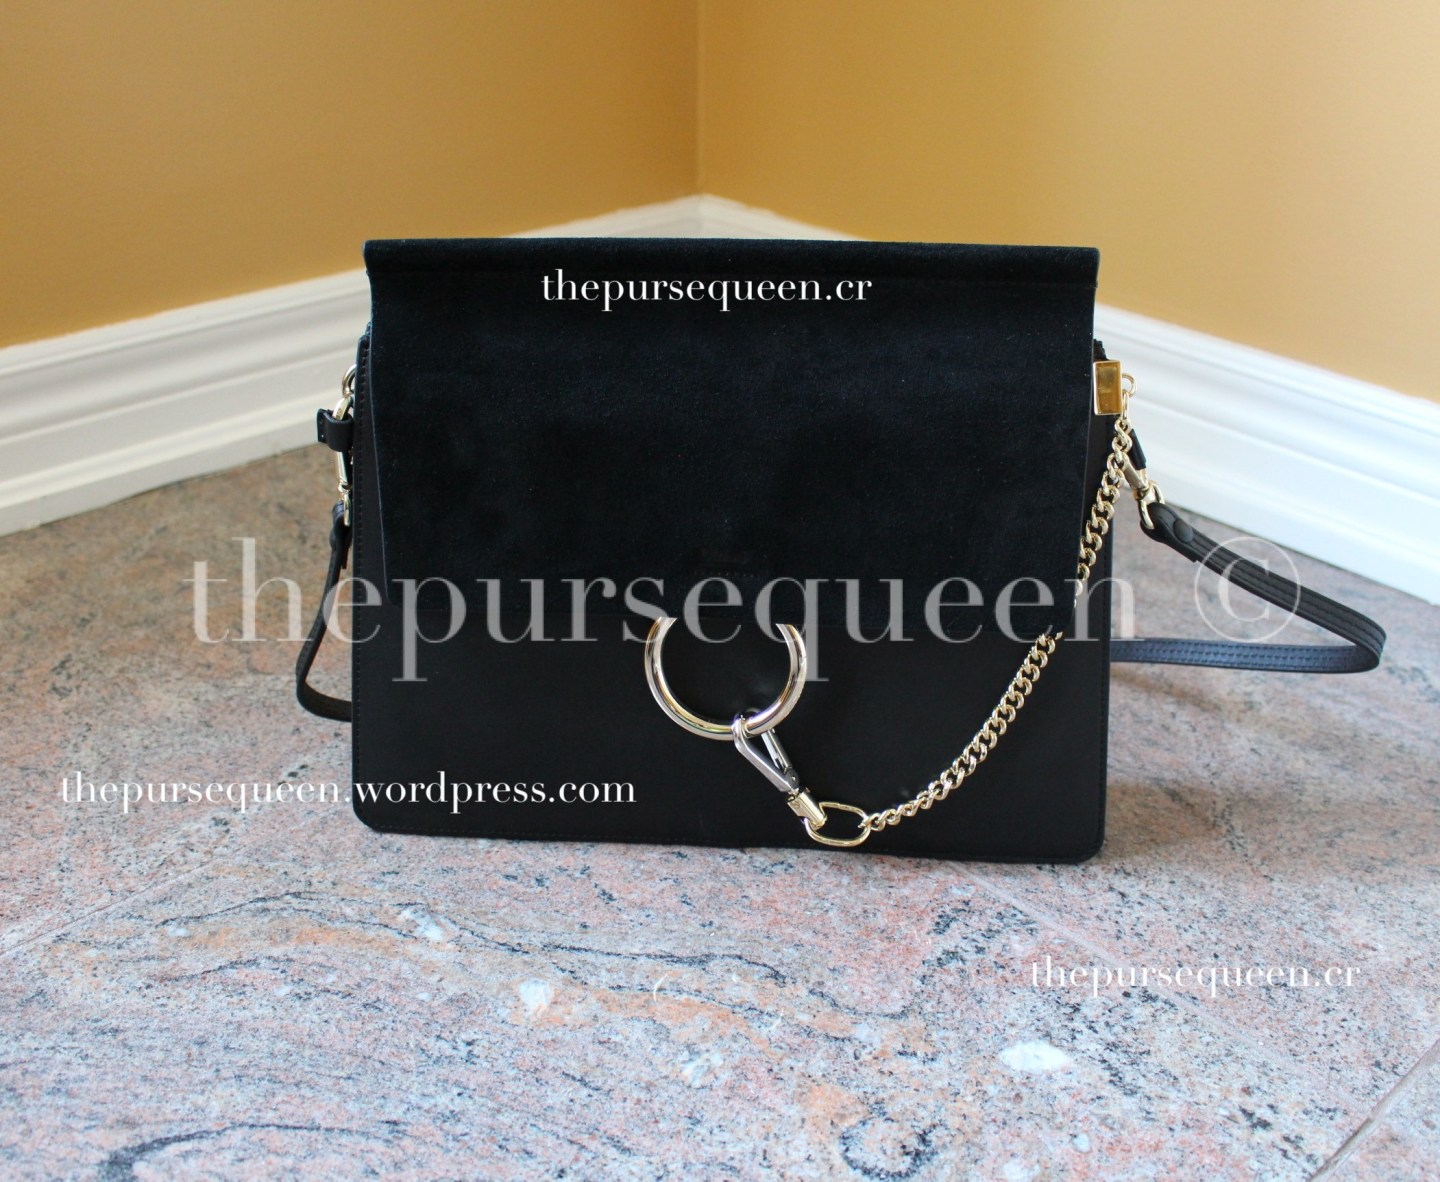 4012fbd7 Chloé Faye Replica Bag Review - The Purse Queen